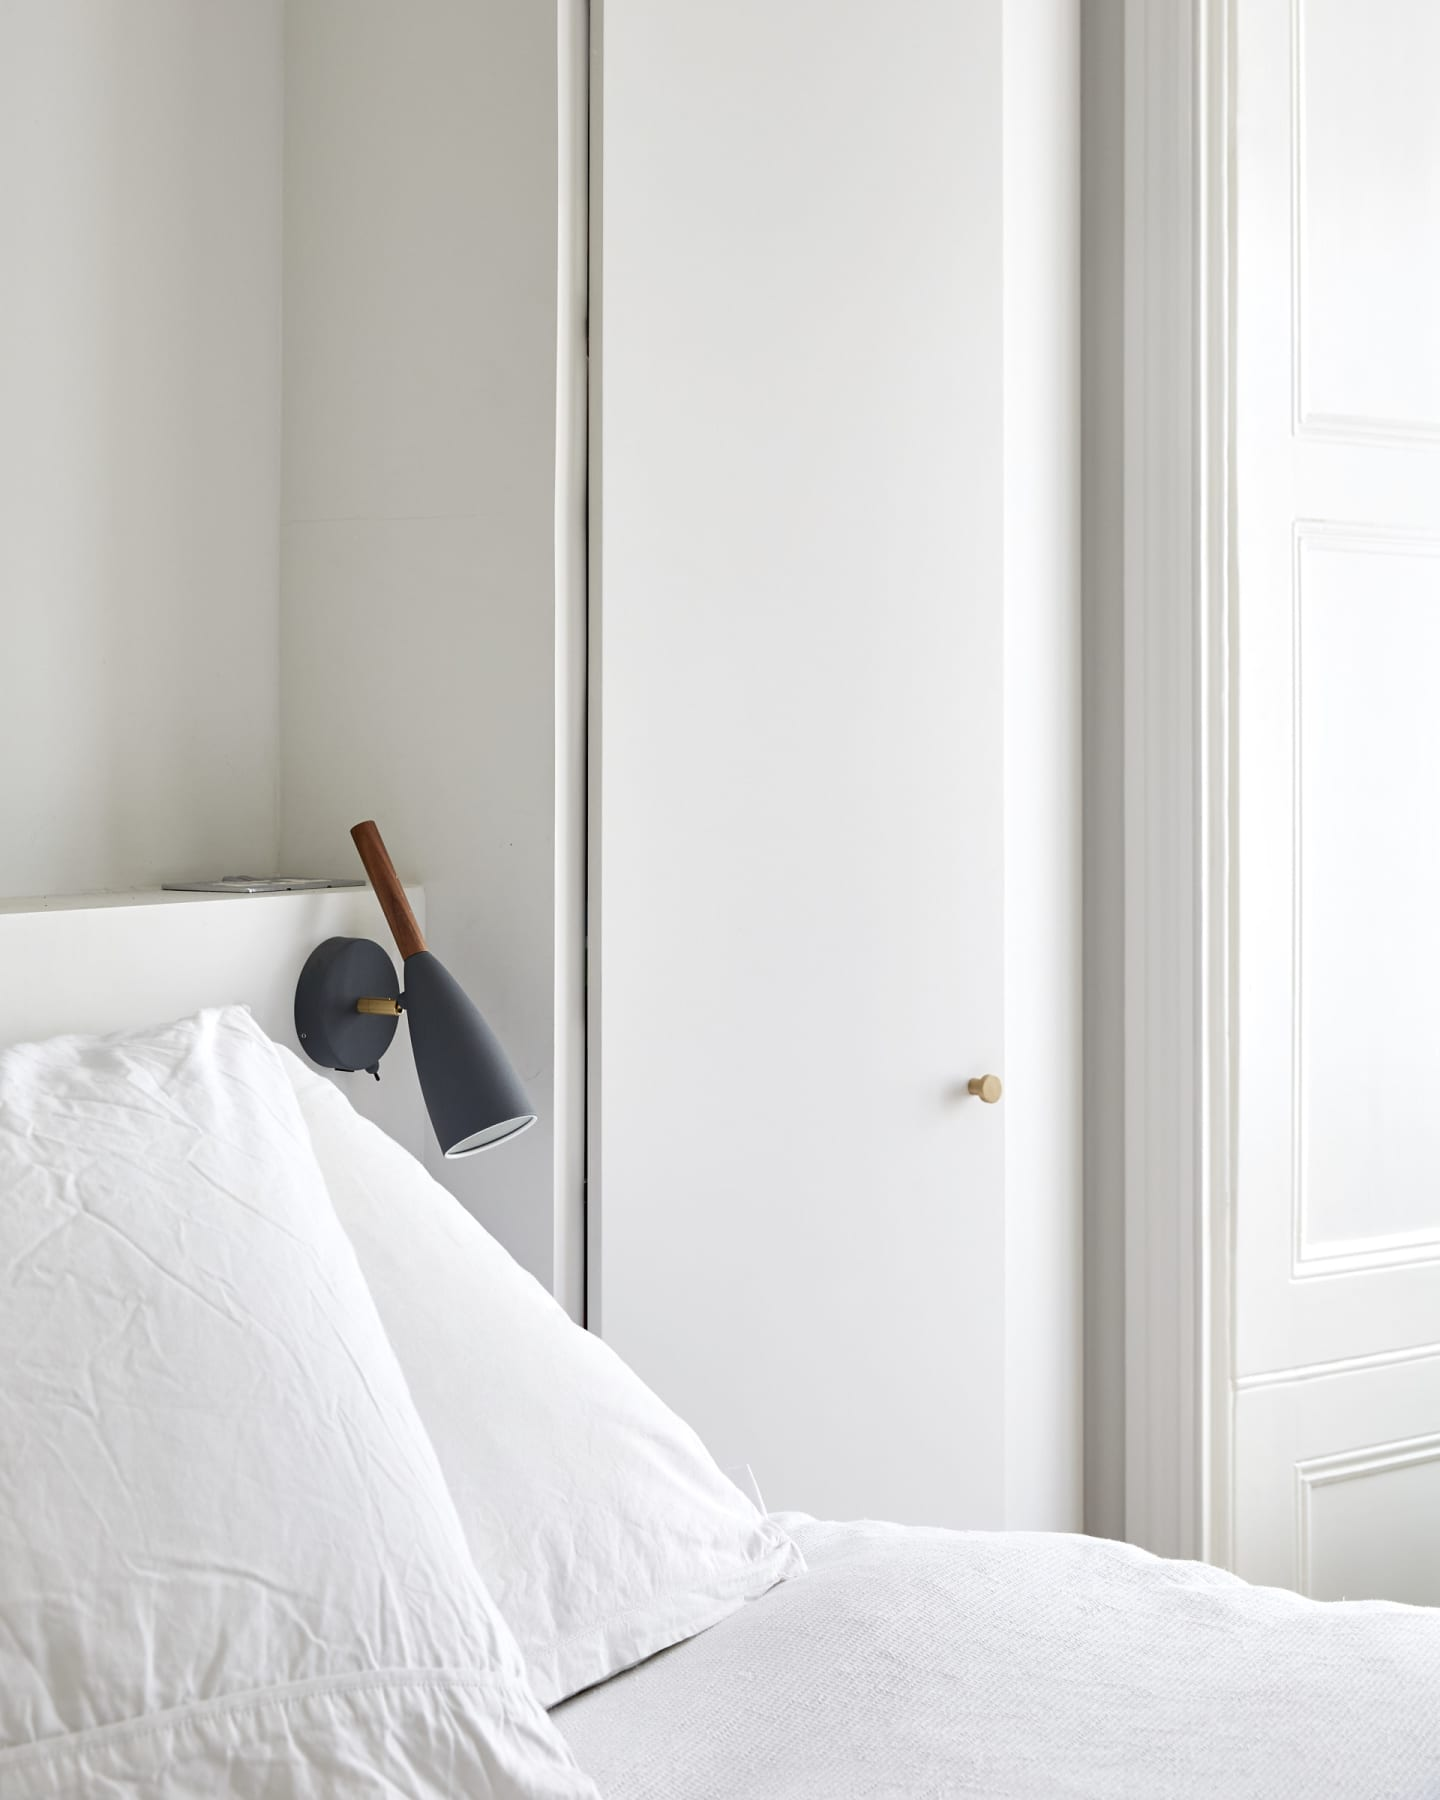 Natural light shining into a white bedroom